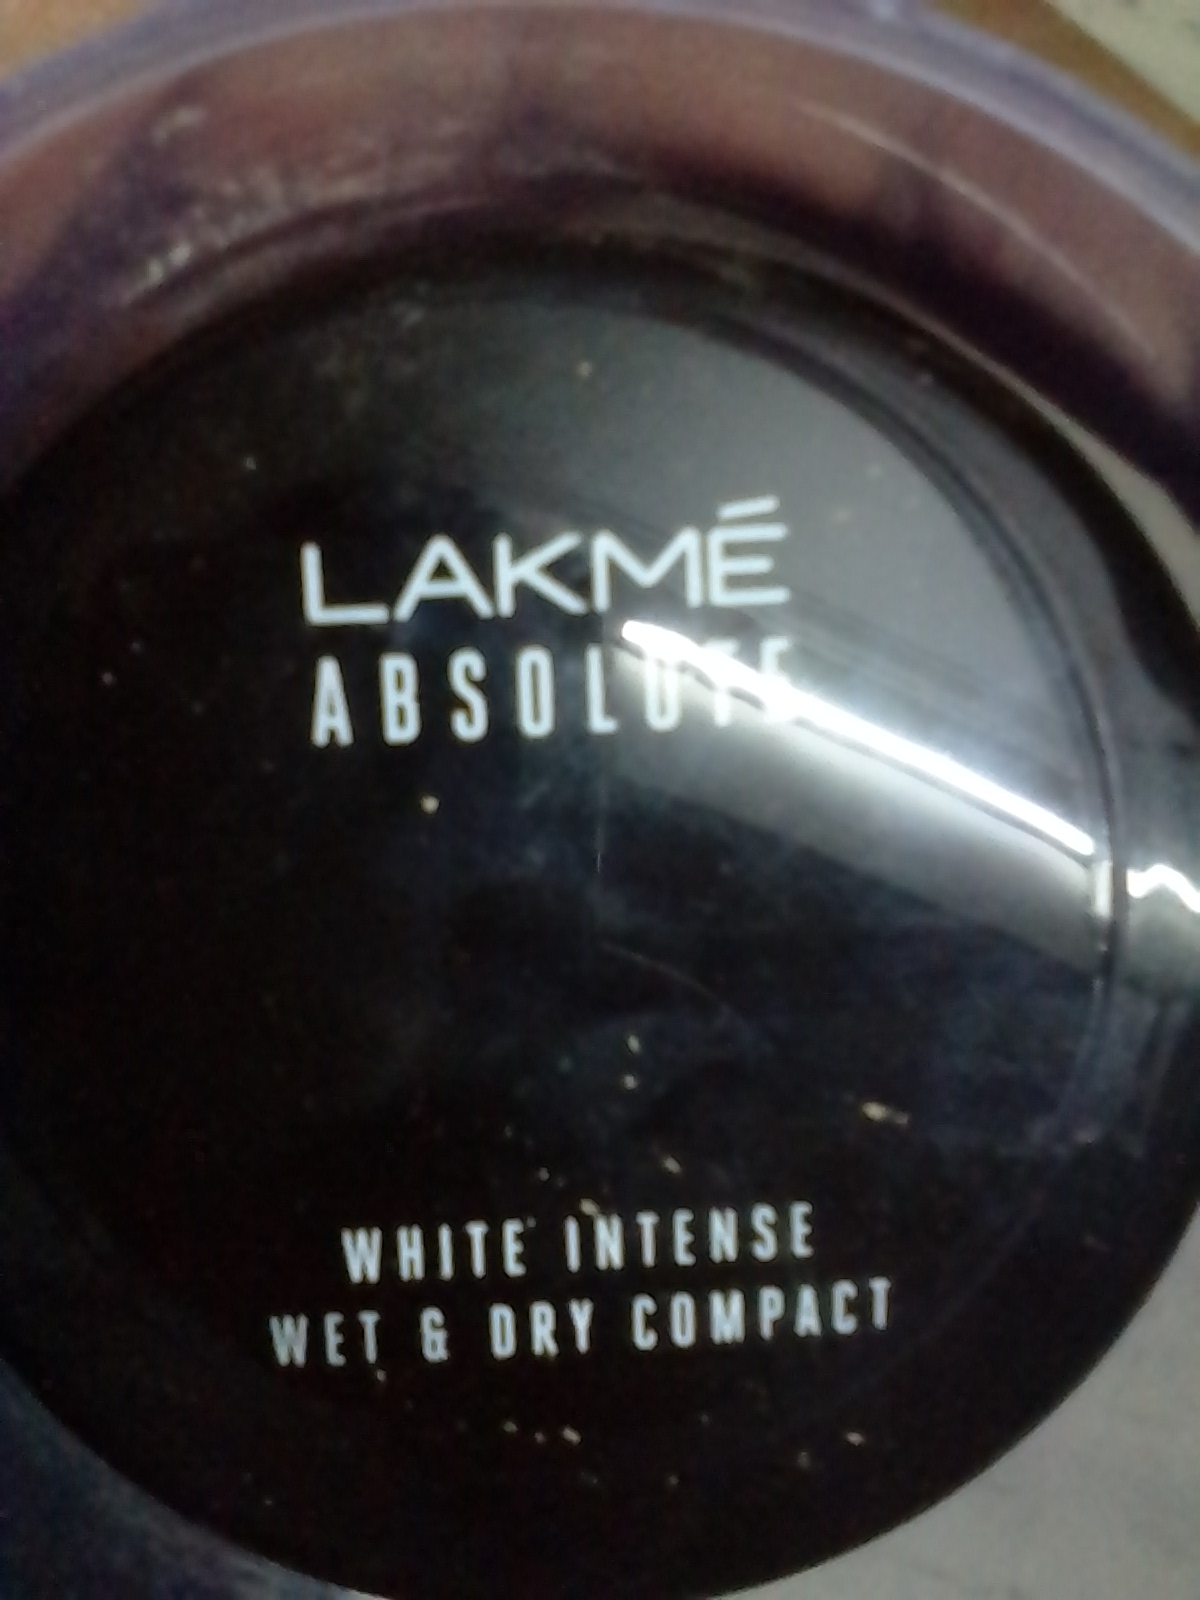 Lakme Absolute White Intense Wet & Dry Compact-Instant makeup Compact-By umadevi